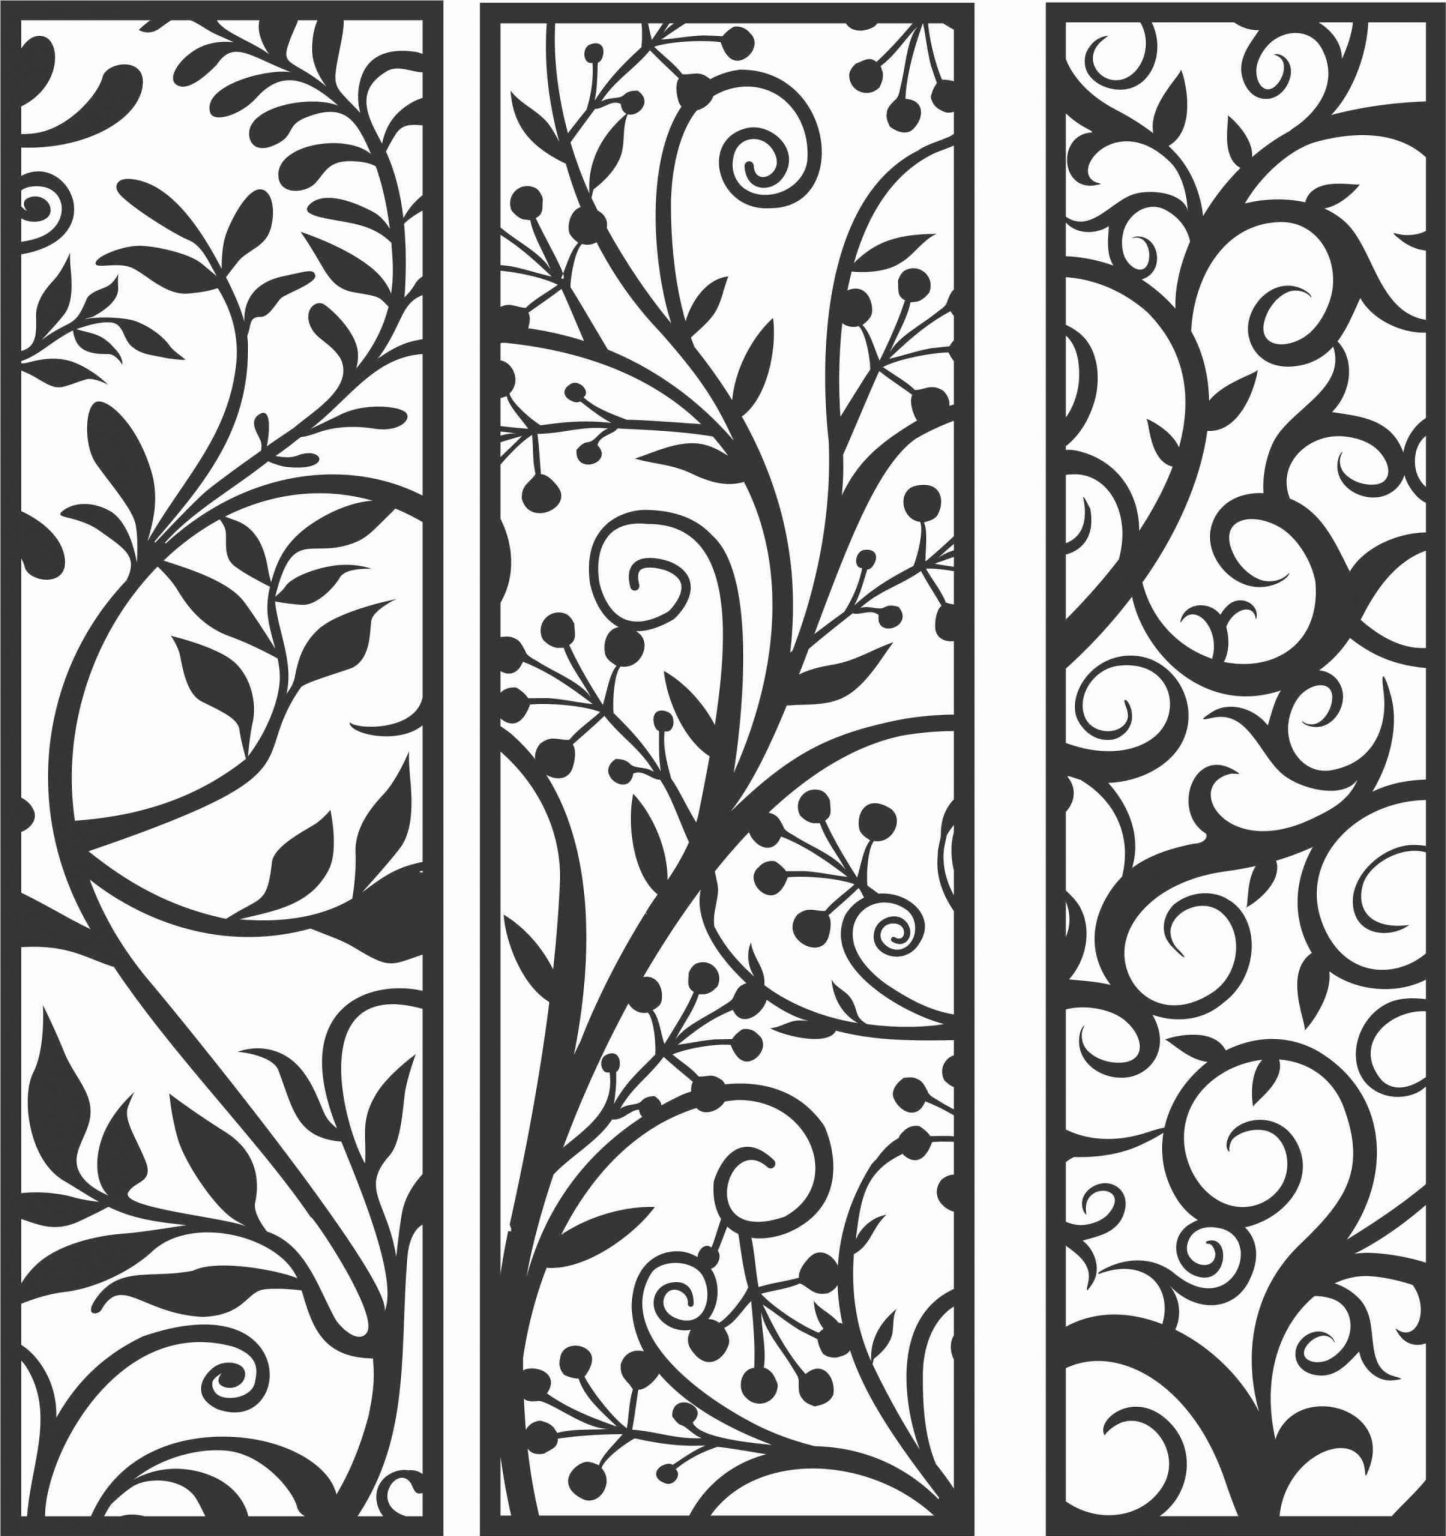 Decorative Screen Patterns For Laser Cutting 87 Free DXF File